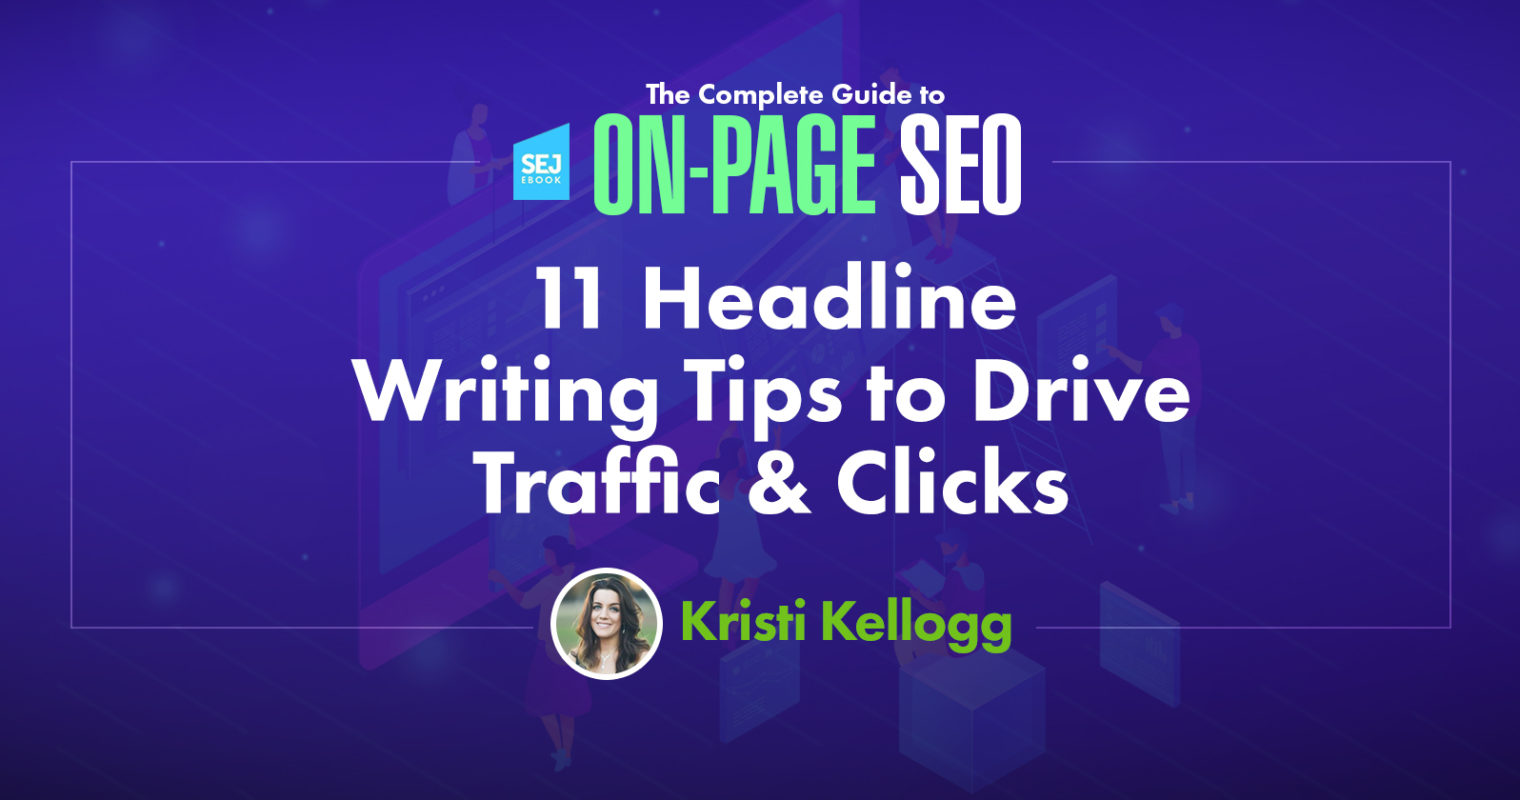 11 Headline Writing Tips to Drive Traffic & Clicks